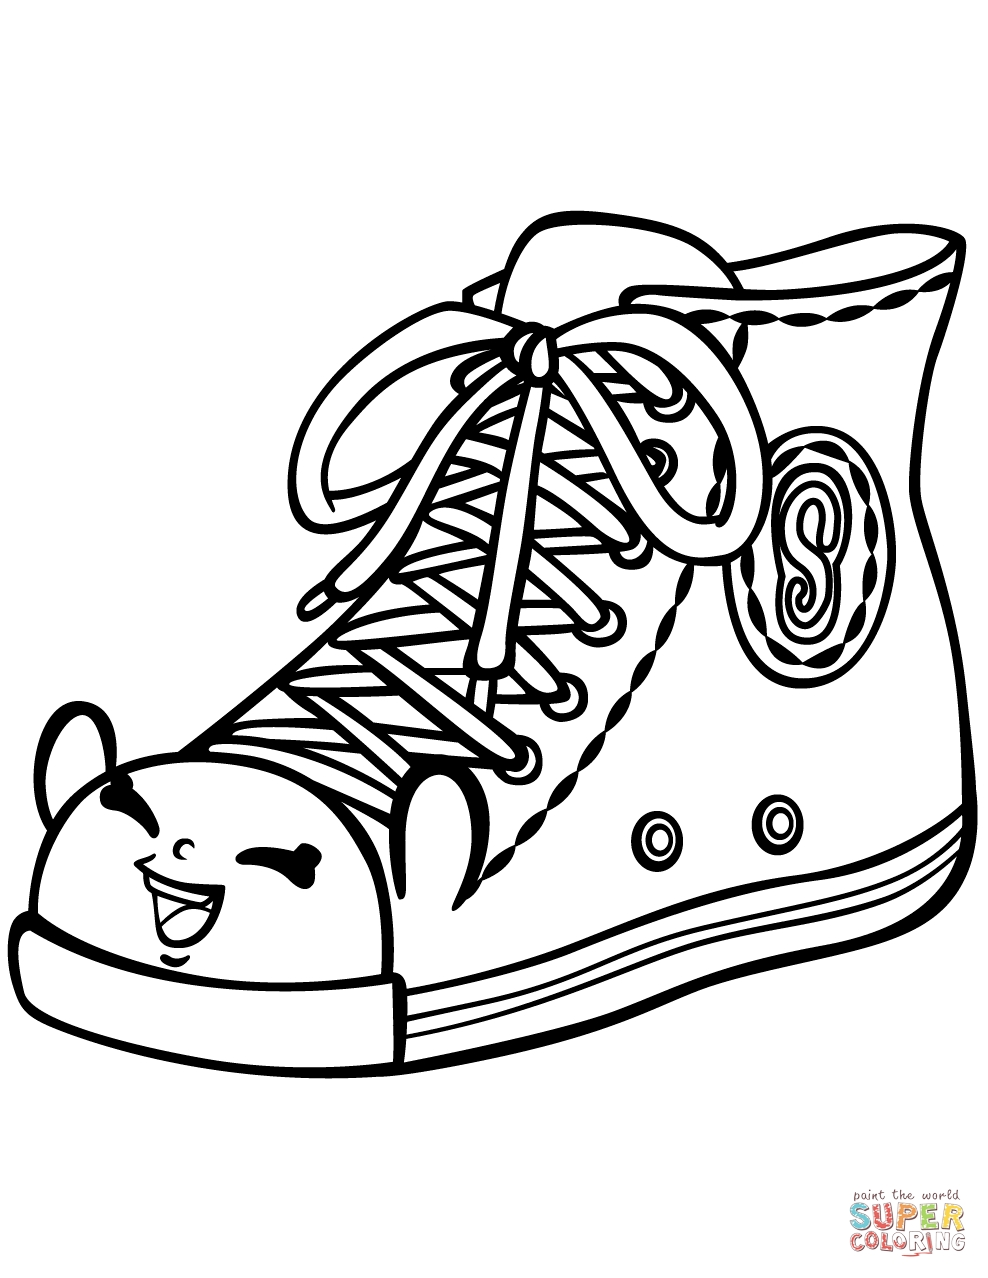 sneaker coloring page - sally sneaker shopkin coloring page